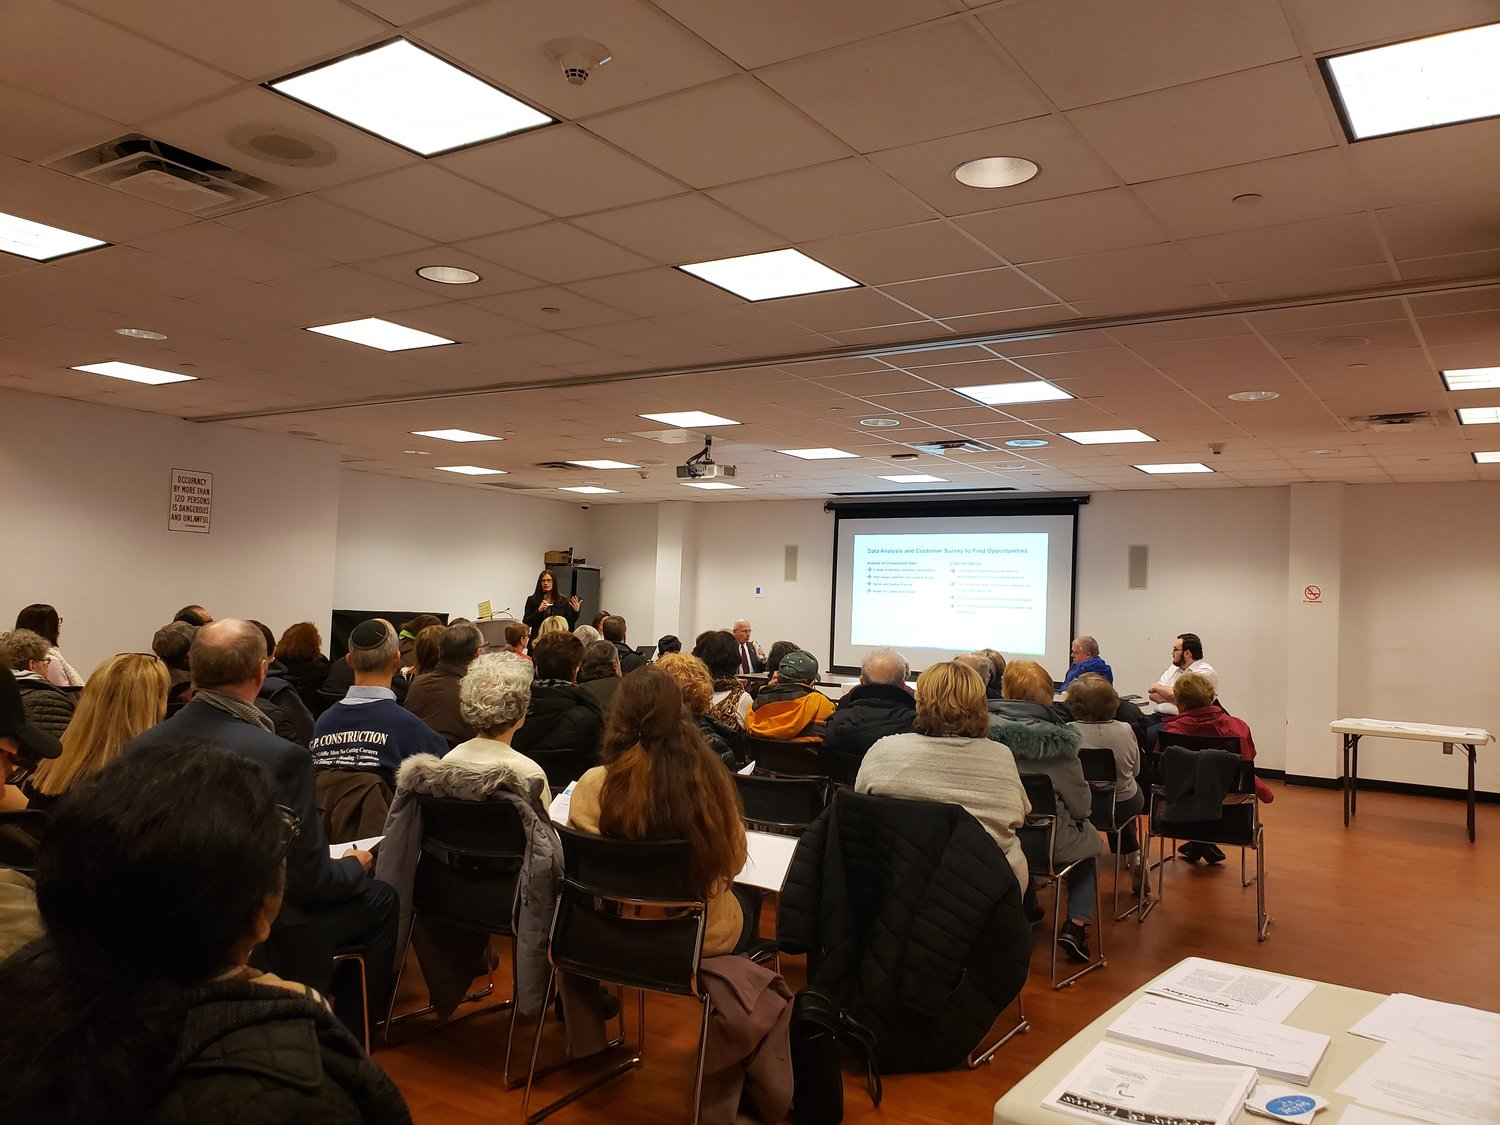 Roughly 50 residents gathered at the West Hempstead Library's community room for a discussion about water quality on March 4.